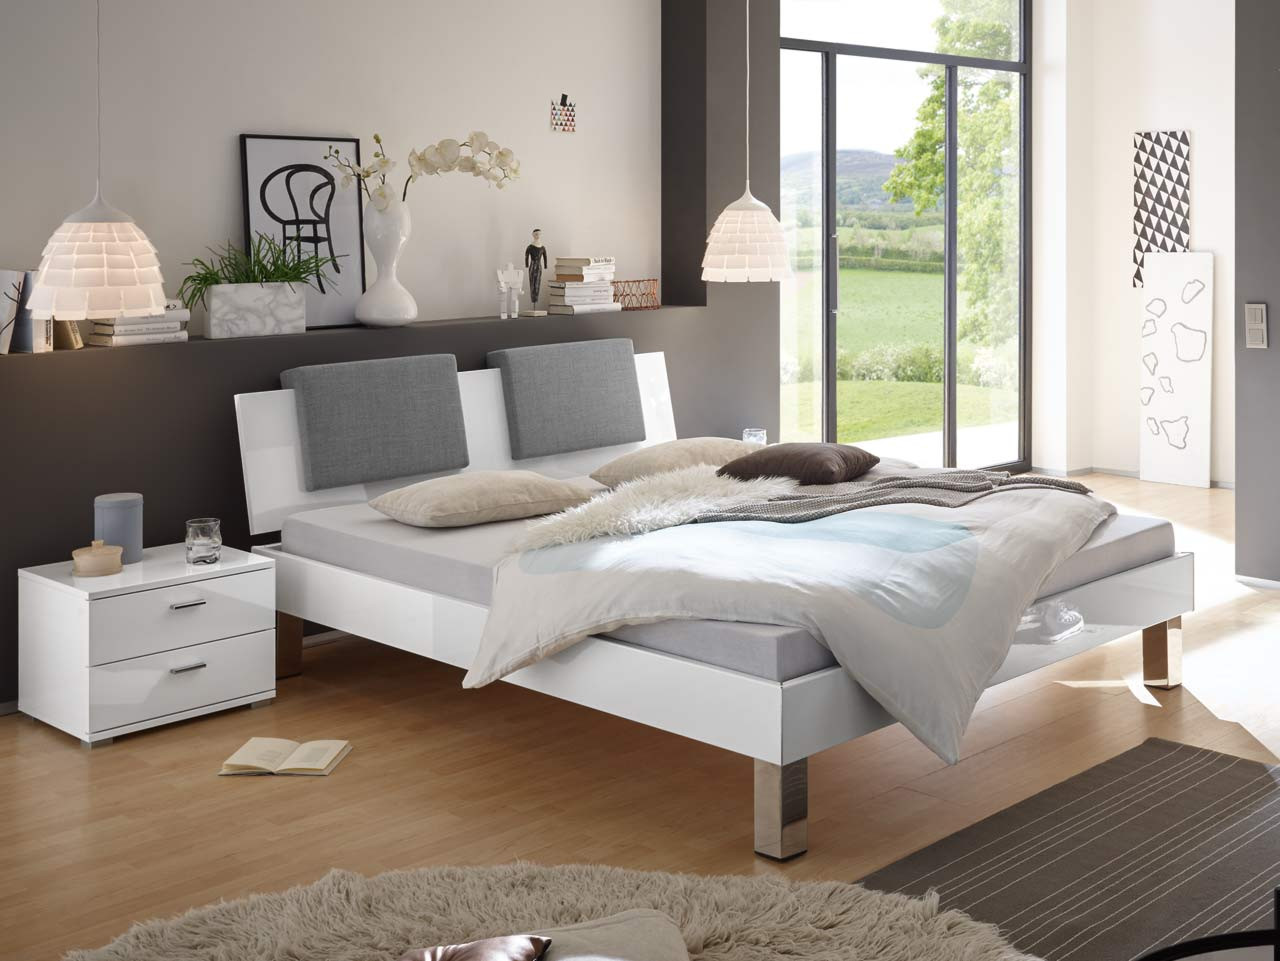 bett weiss 140x200 genial bett x mit bettkasten wei with bett weiss 140x200 x cm wei von. Black Bedroom Furniture Sets. Home Design Ideas